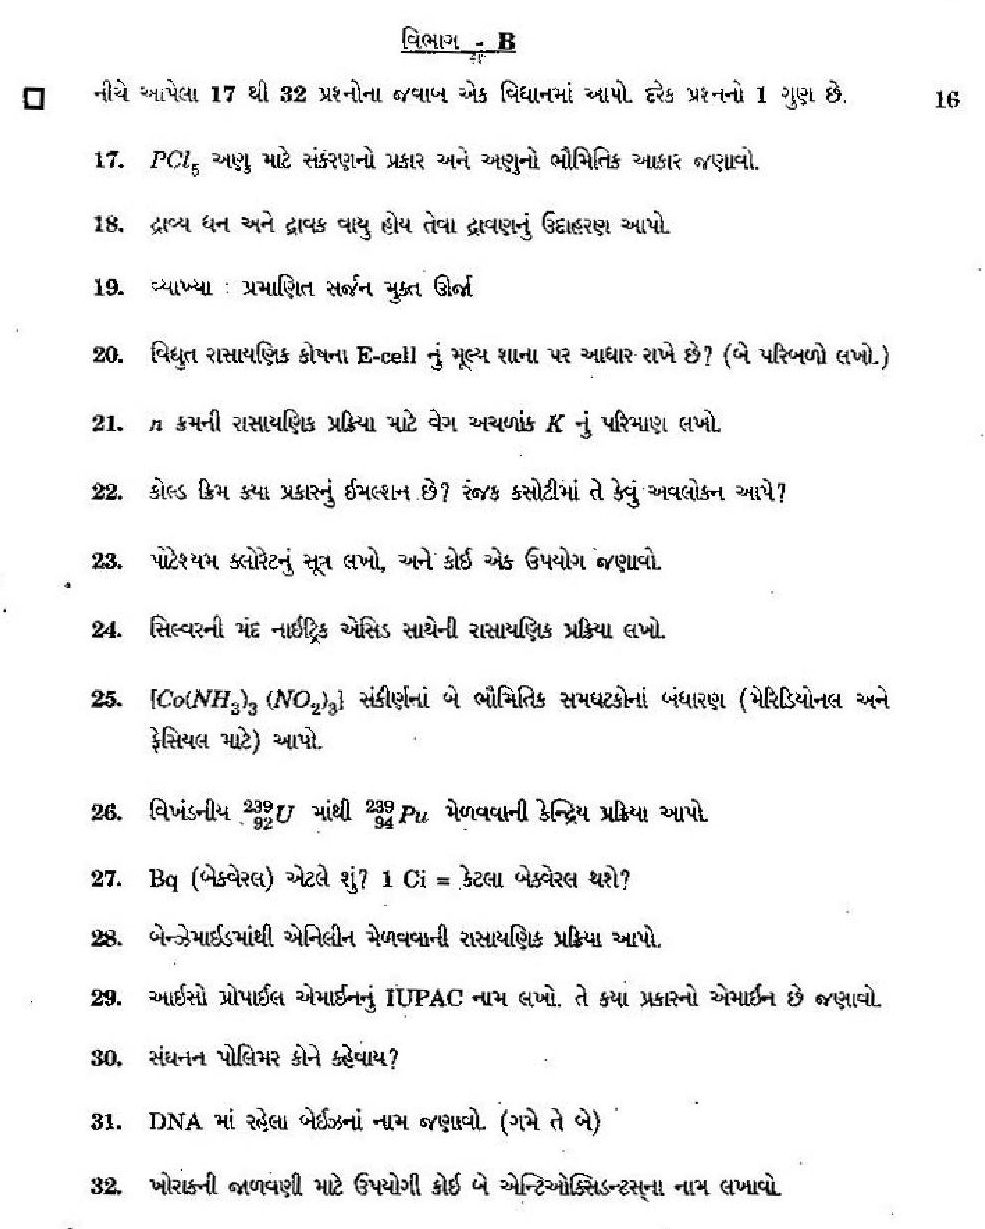 Gujarat Board Class XII Question Papers (Gujarati Medium) 2010 - Chemistry